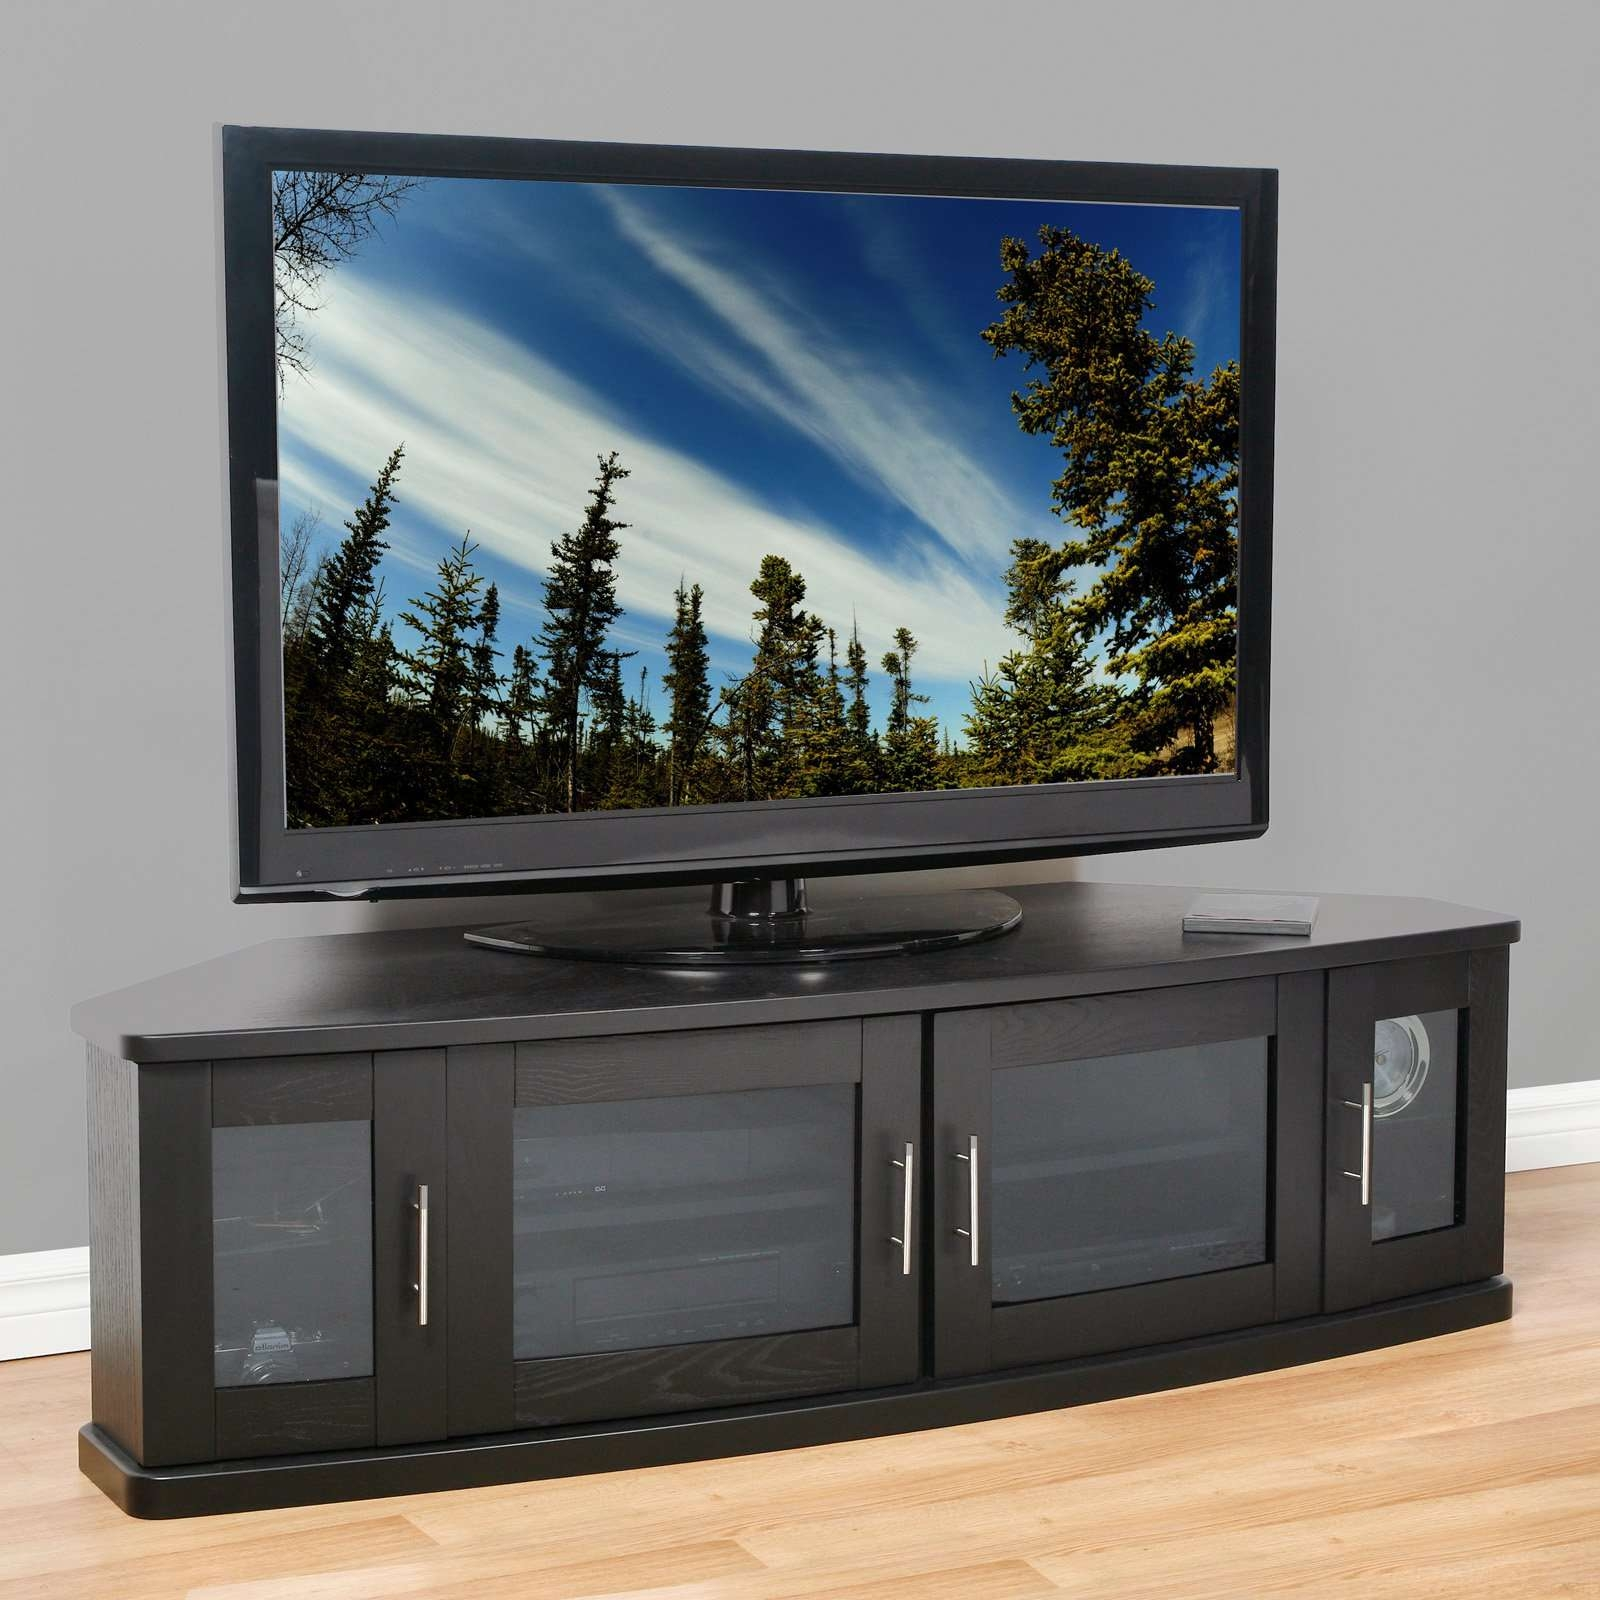 Plateau Newport 62 Inch Corner Tv Stand In Black – Walmart For Tv Stands For Corners (View 10 of 20)